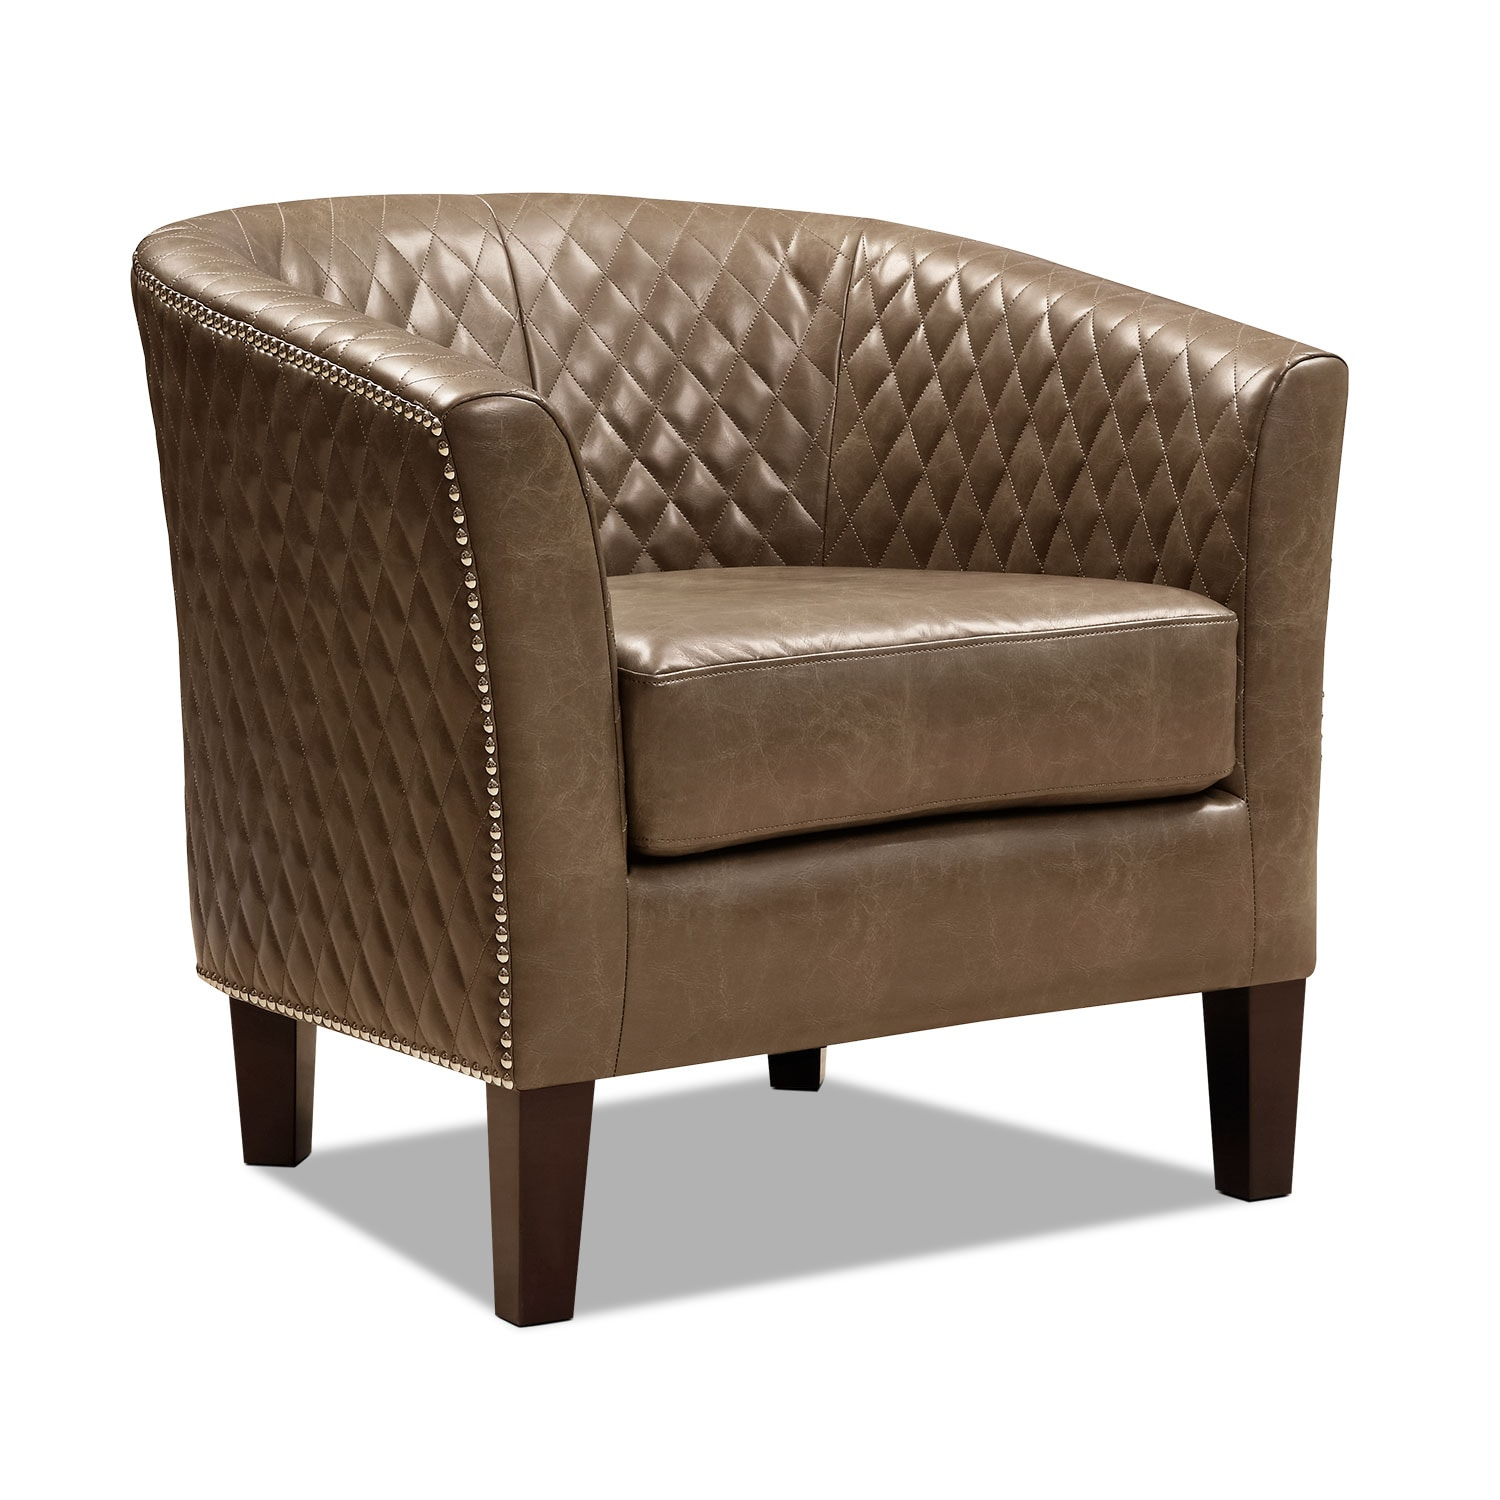 Luxor Accent Chair - Black